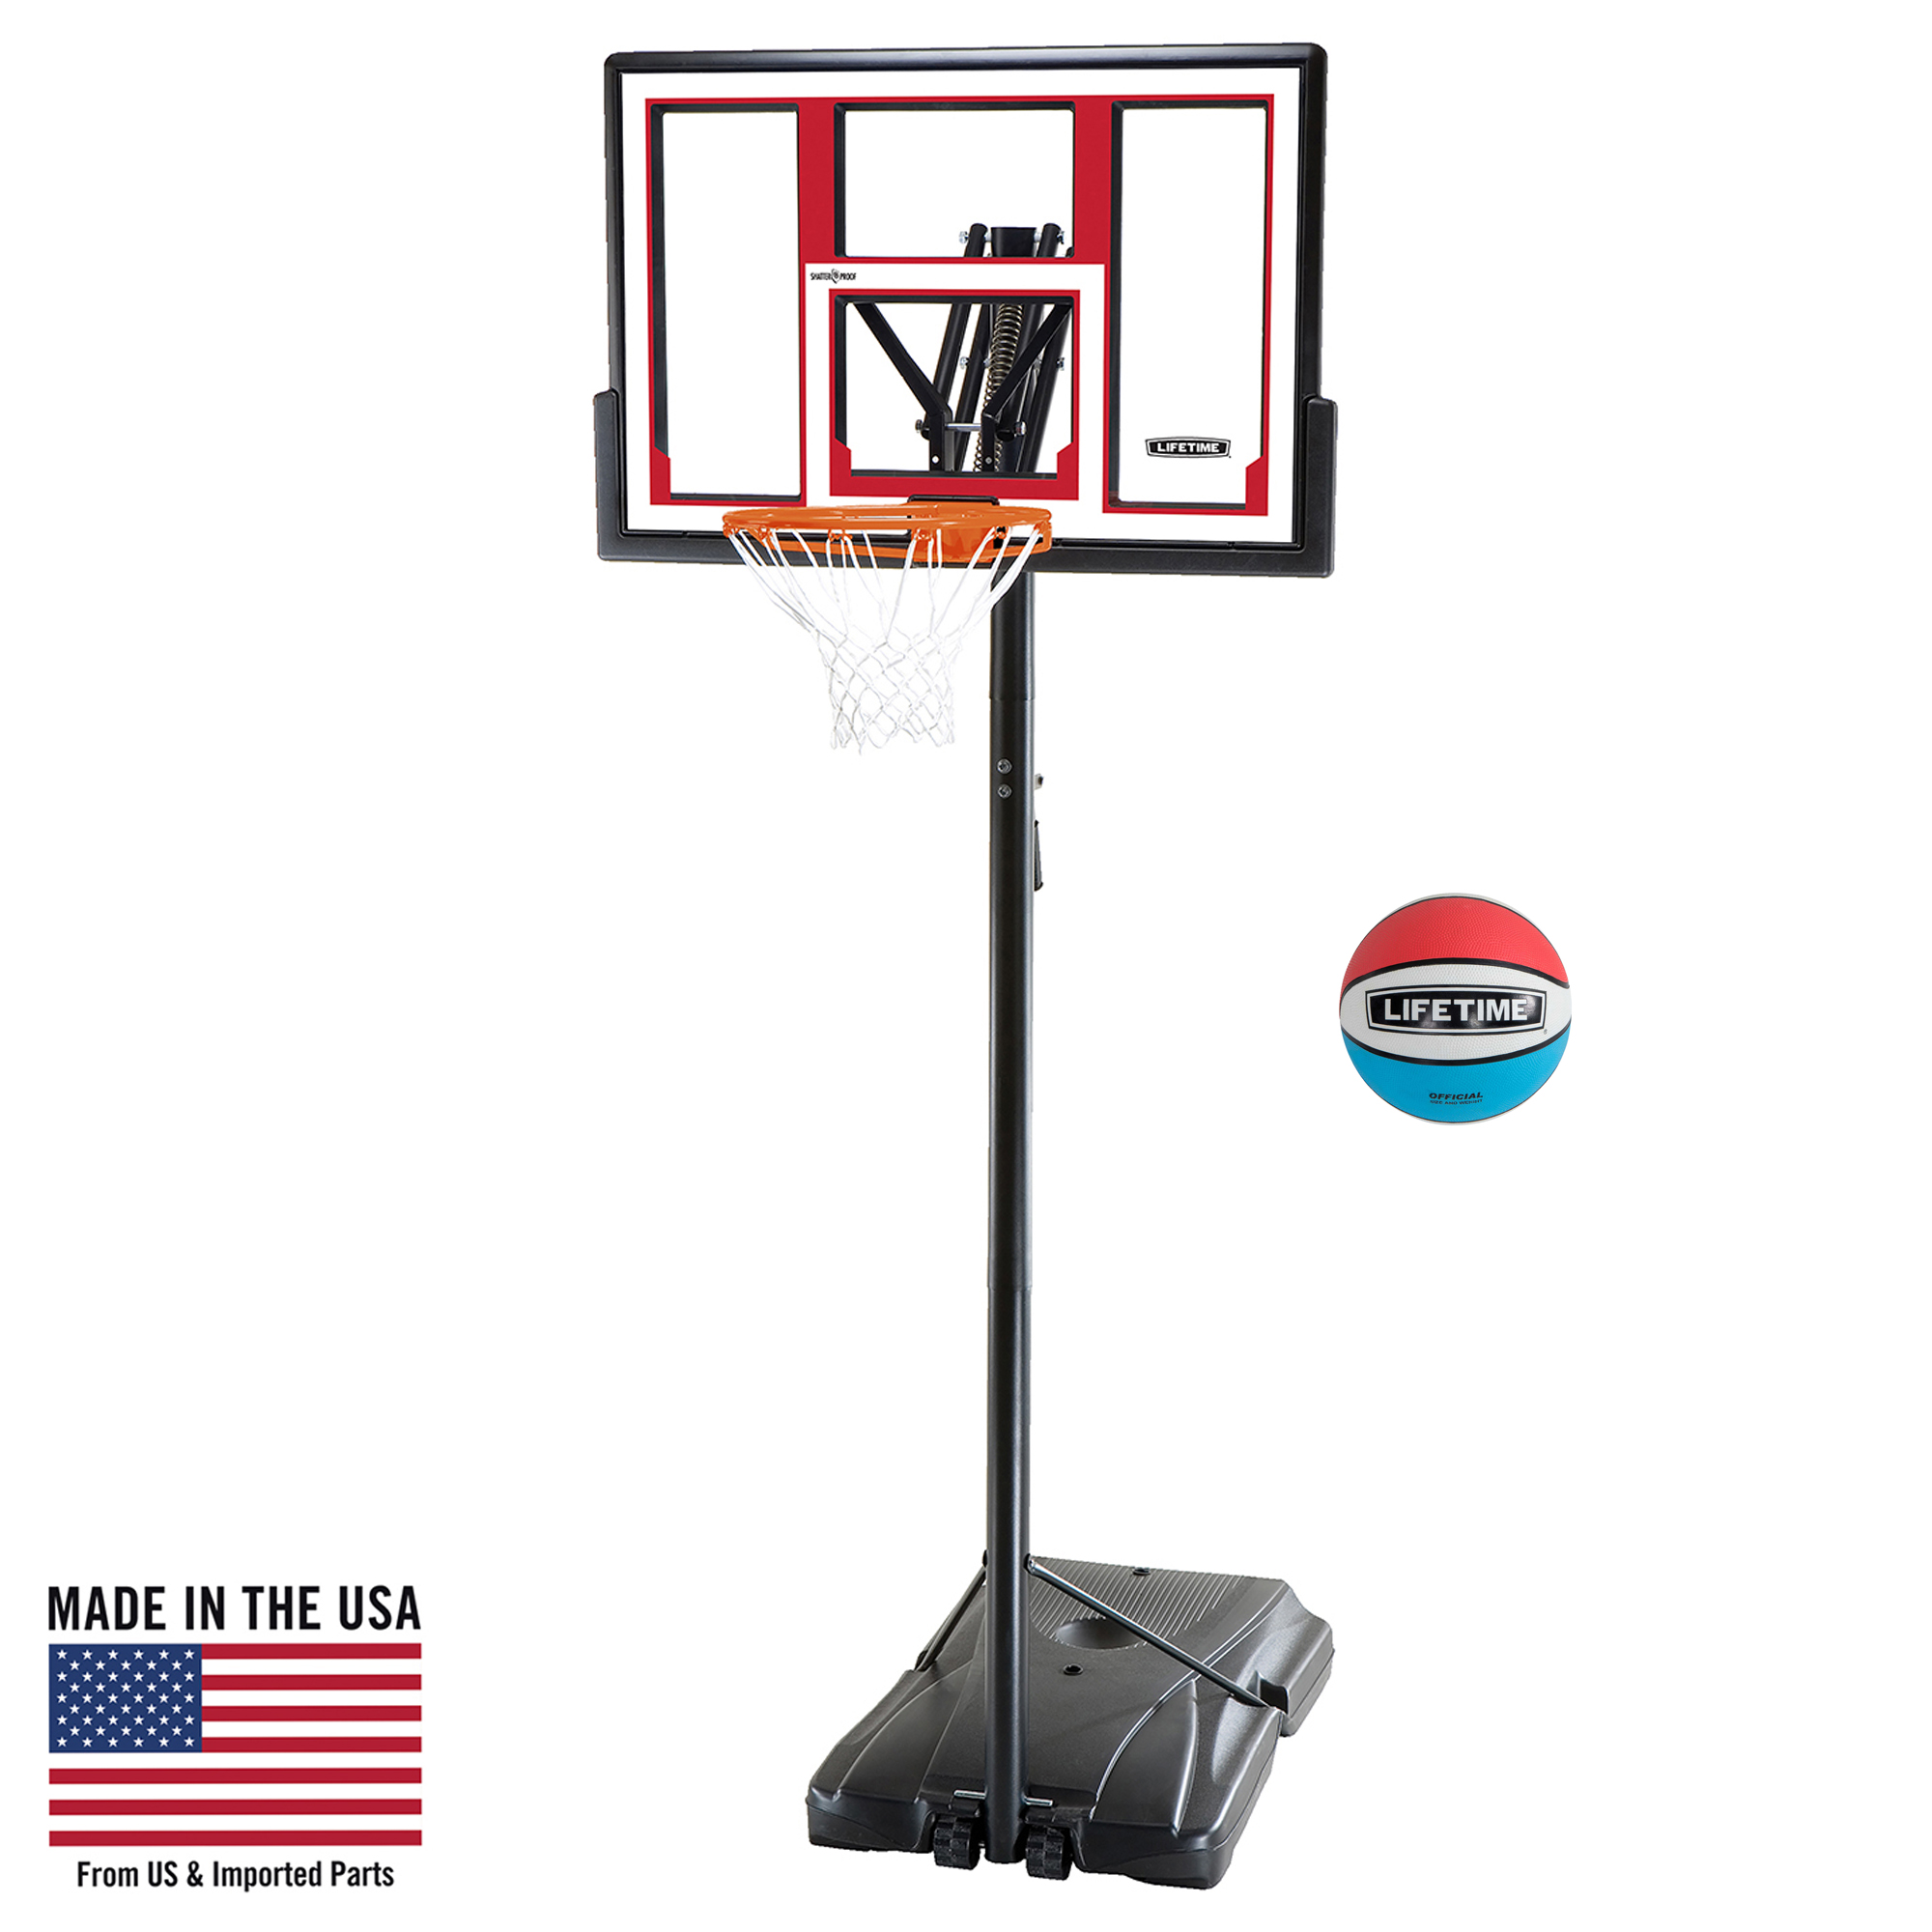 "Lifetime 48"" Shatterproof Portable One Hand Height Adjustable Basketball System with Basketball, 90491 by Lifetime Products"